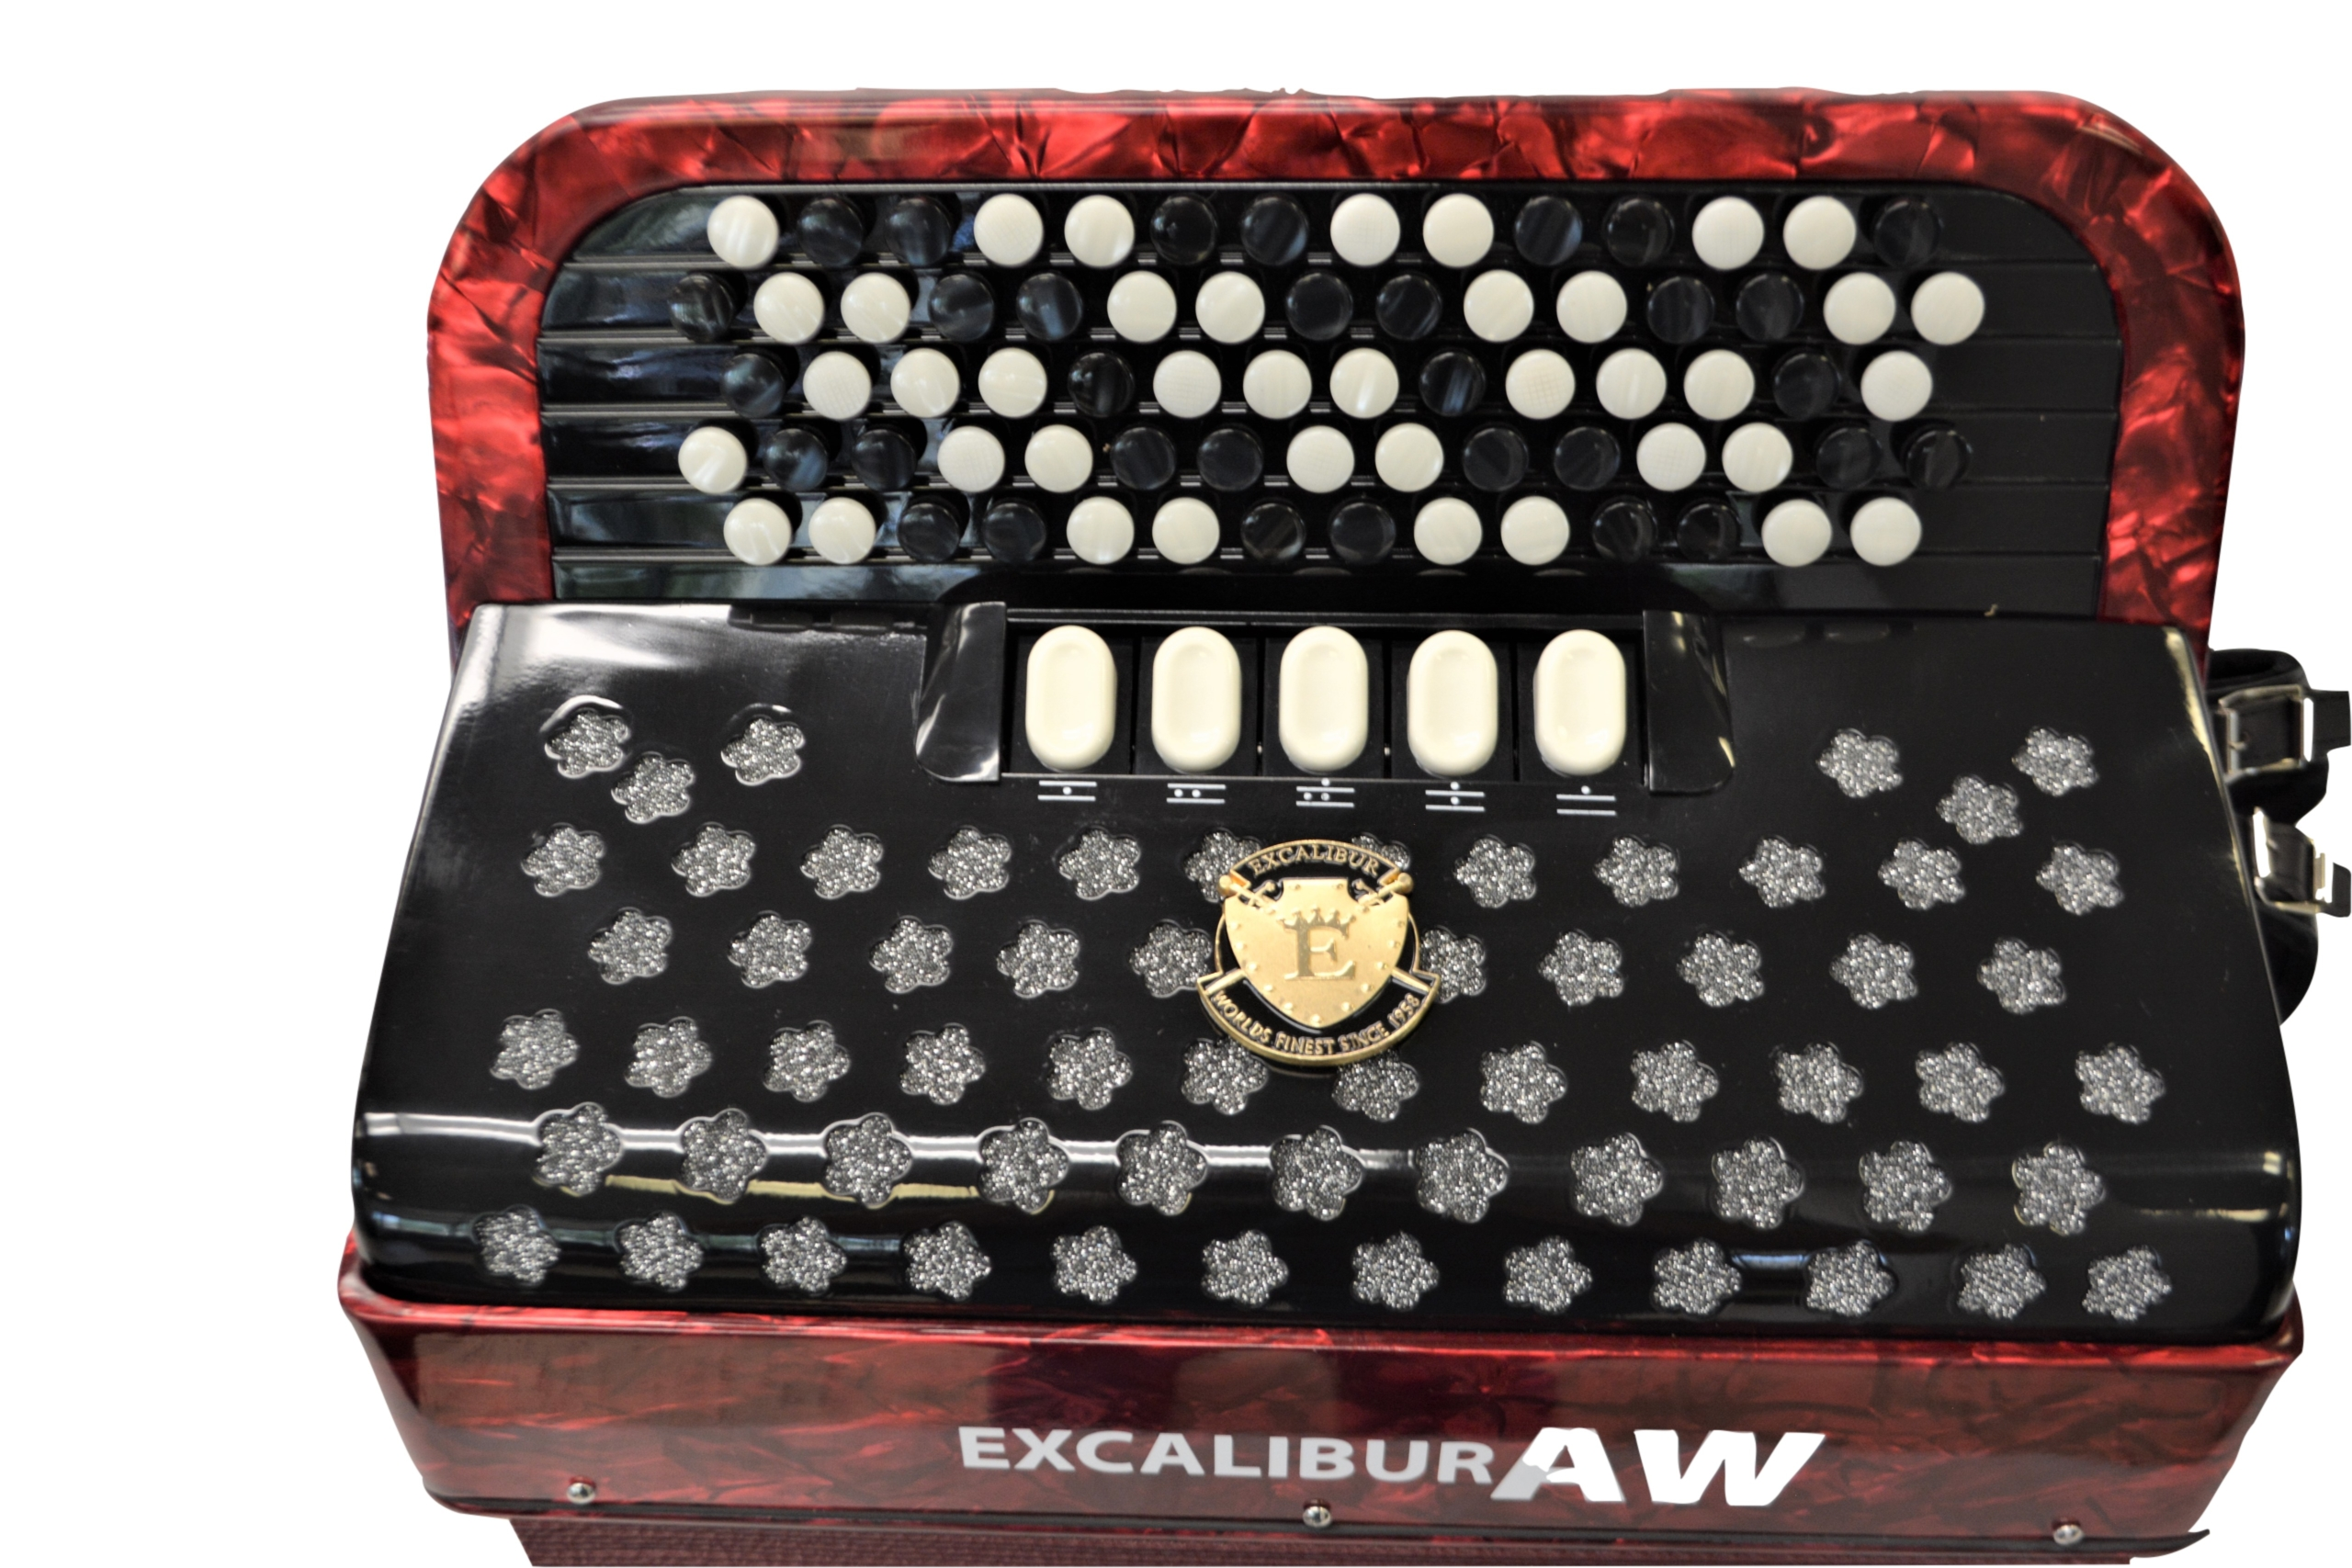 Excalibur 96 Bass Chromatic Button Accordion Akordeon Werks(AW) Red Polish C System